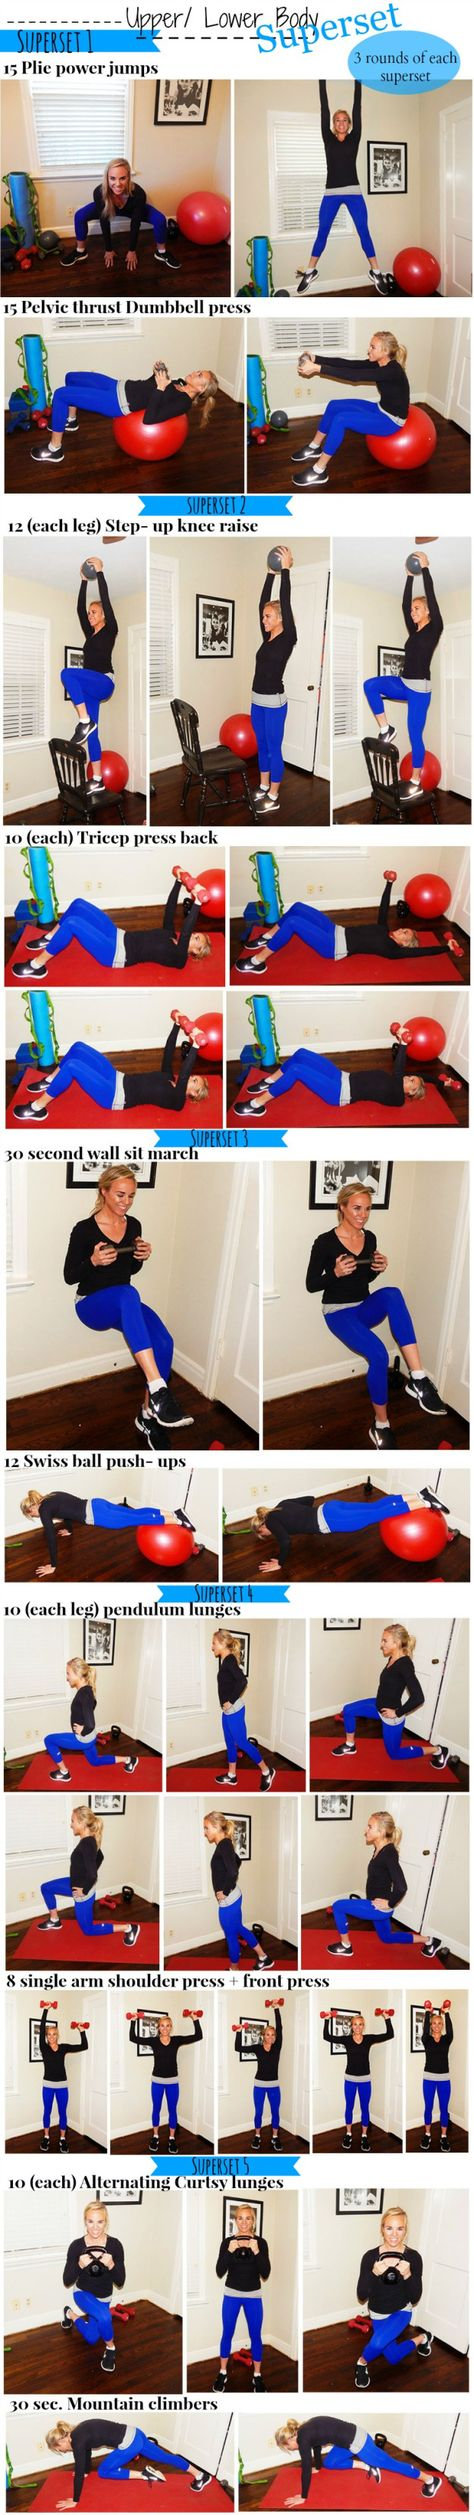 Upper-lower body super-set circuit (There are 5 Supersets in this workout. With each superset you will do the exercises back to back with little to no recovery. Do three sets of each superset. Rest for 30- 60 seconds before moving on to the next superset.)